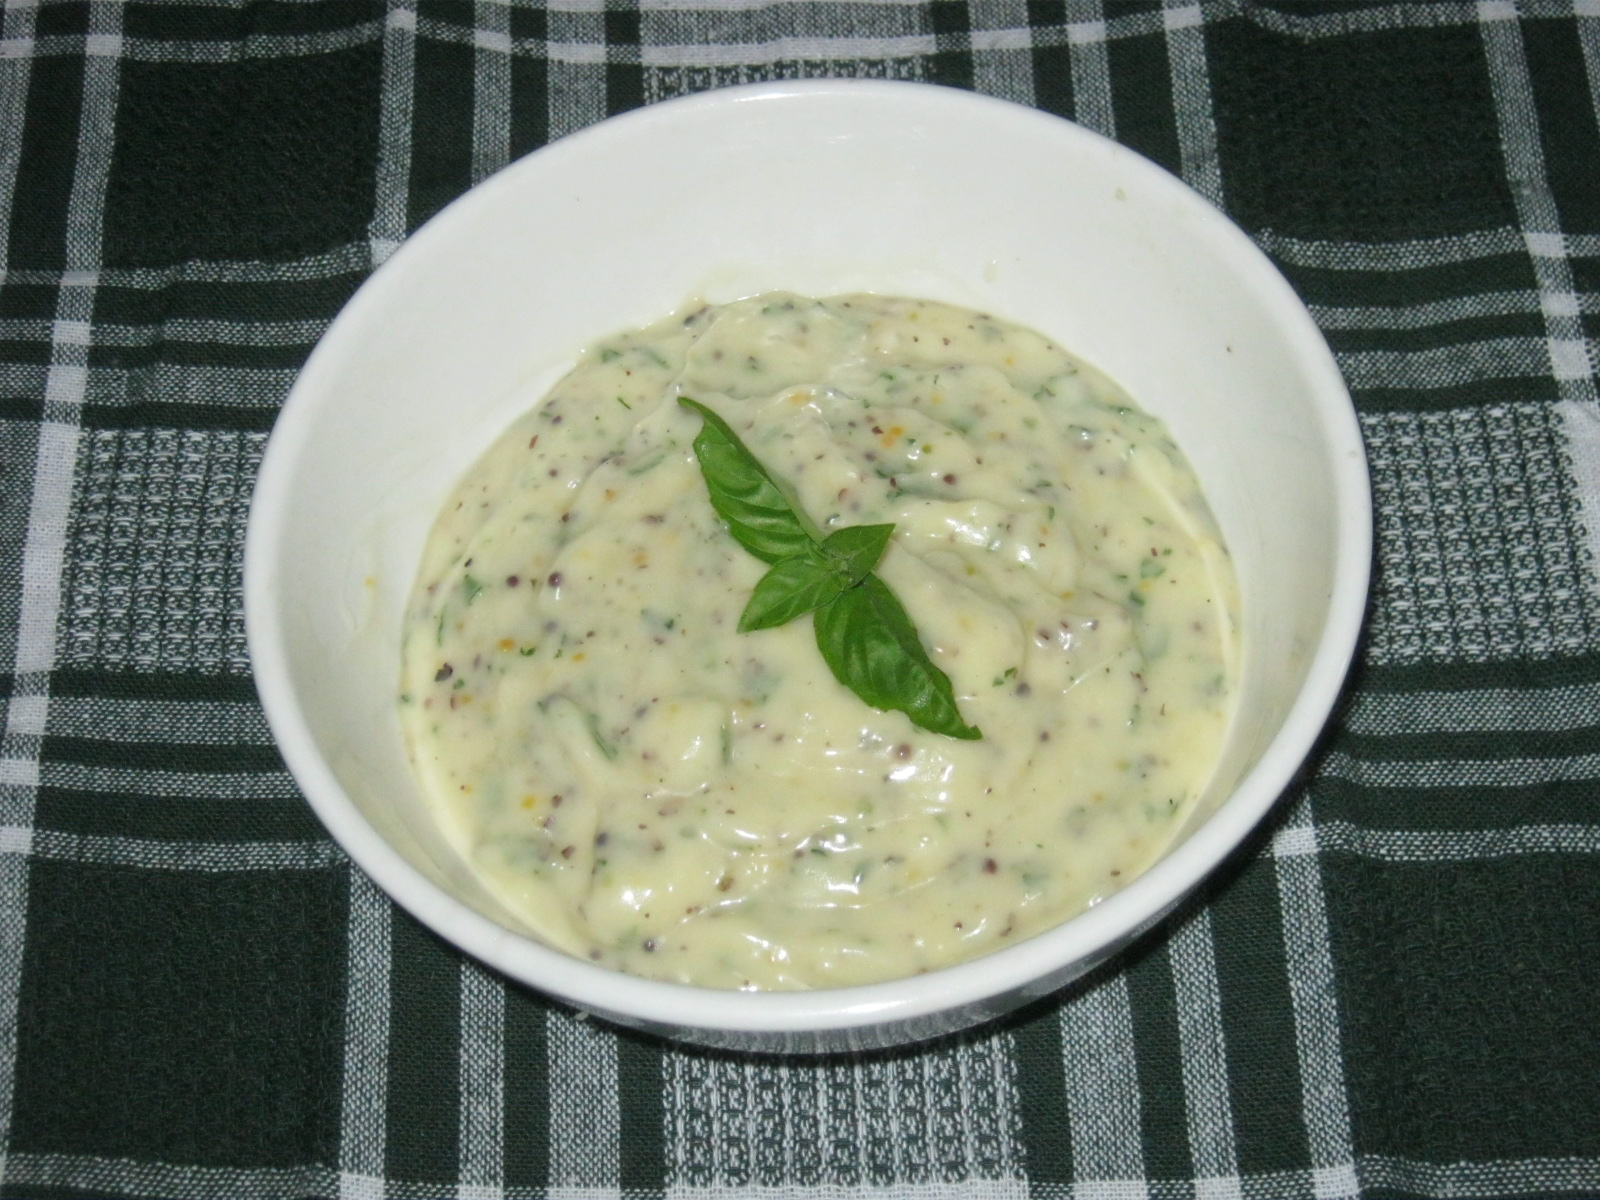 Homemade Remoulade